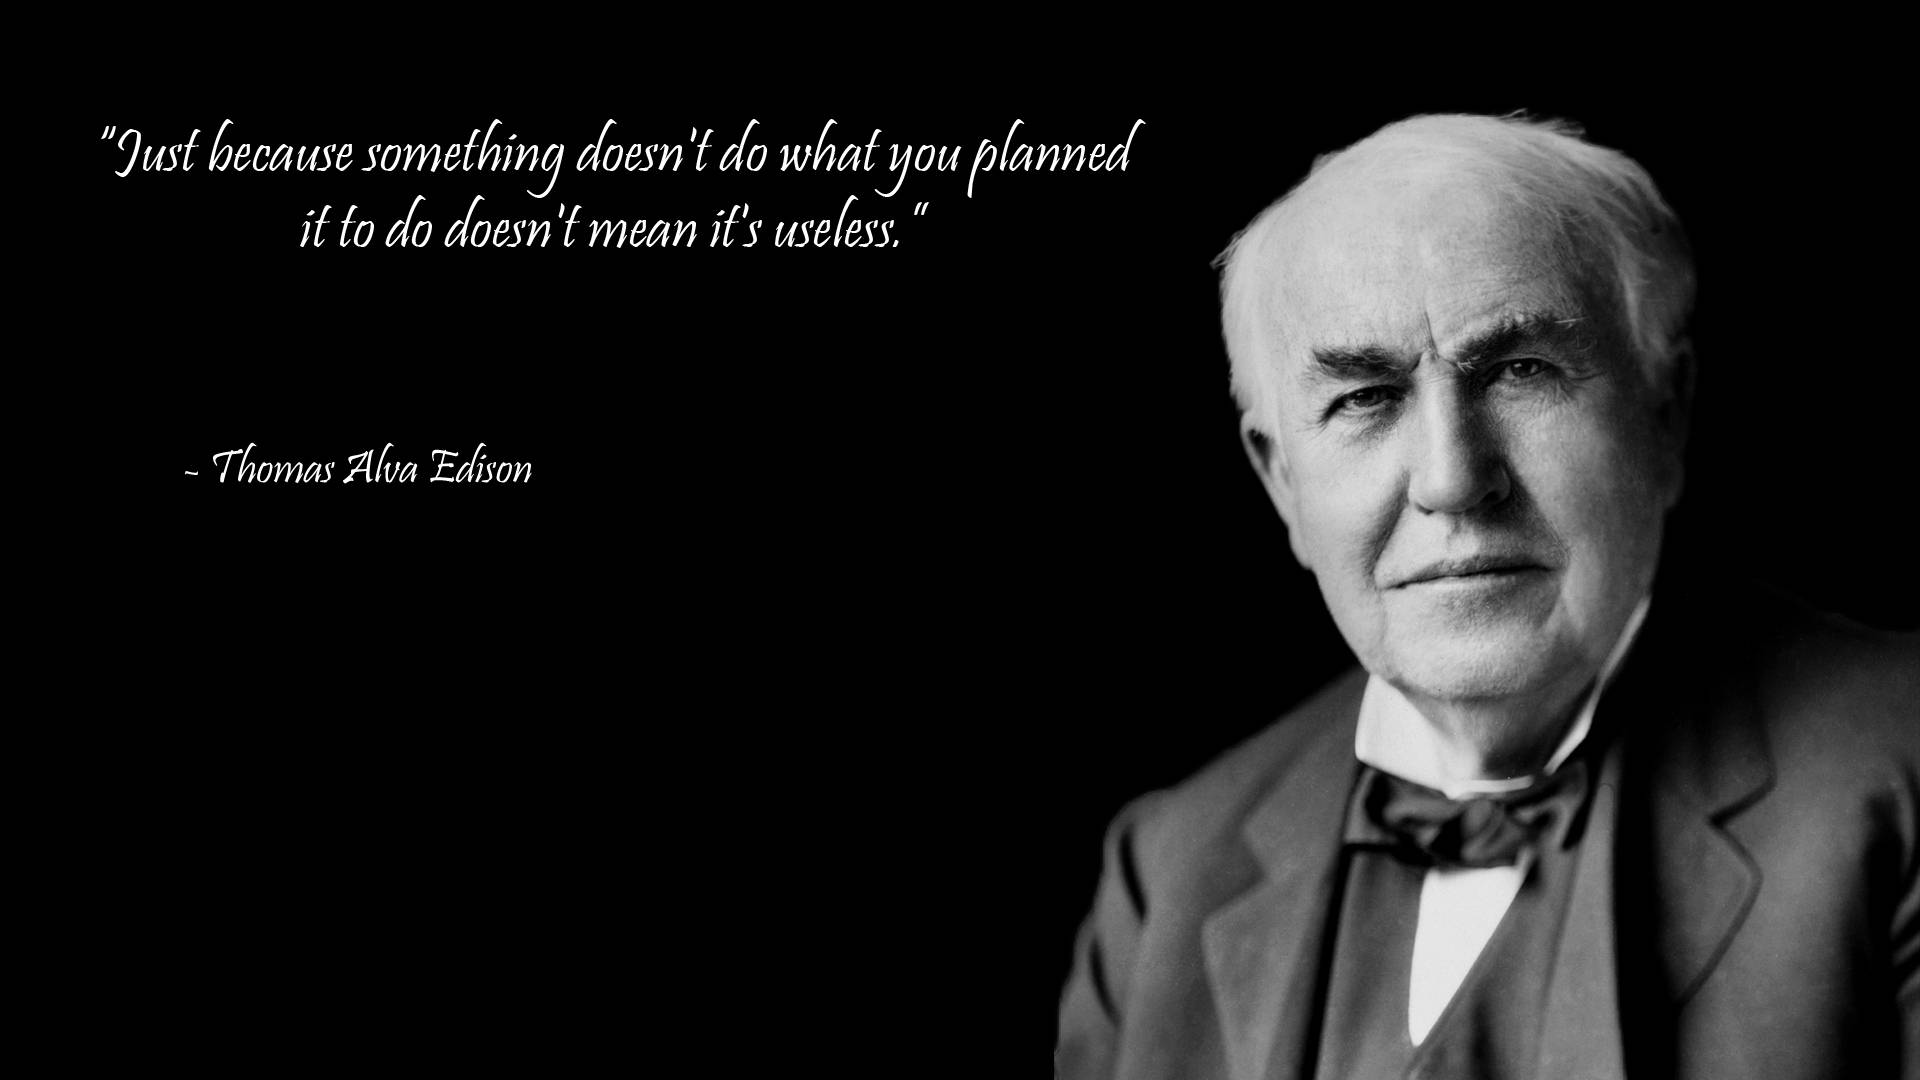 Famous Quotes, Quotes Edison, Thomas Alva, Everyday Inspiration, Thomas Edison I, Affirmations Quotes, Quotes Wallpapers, Edison Quotes, Alva Edison